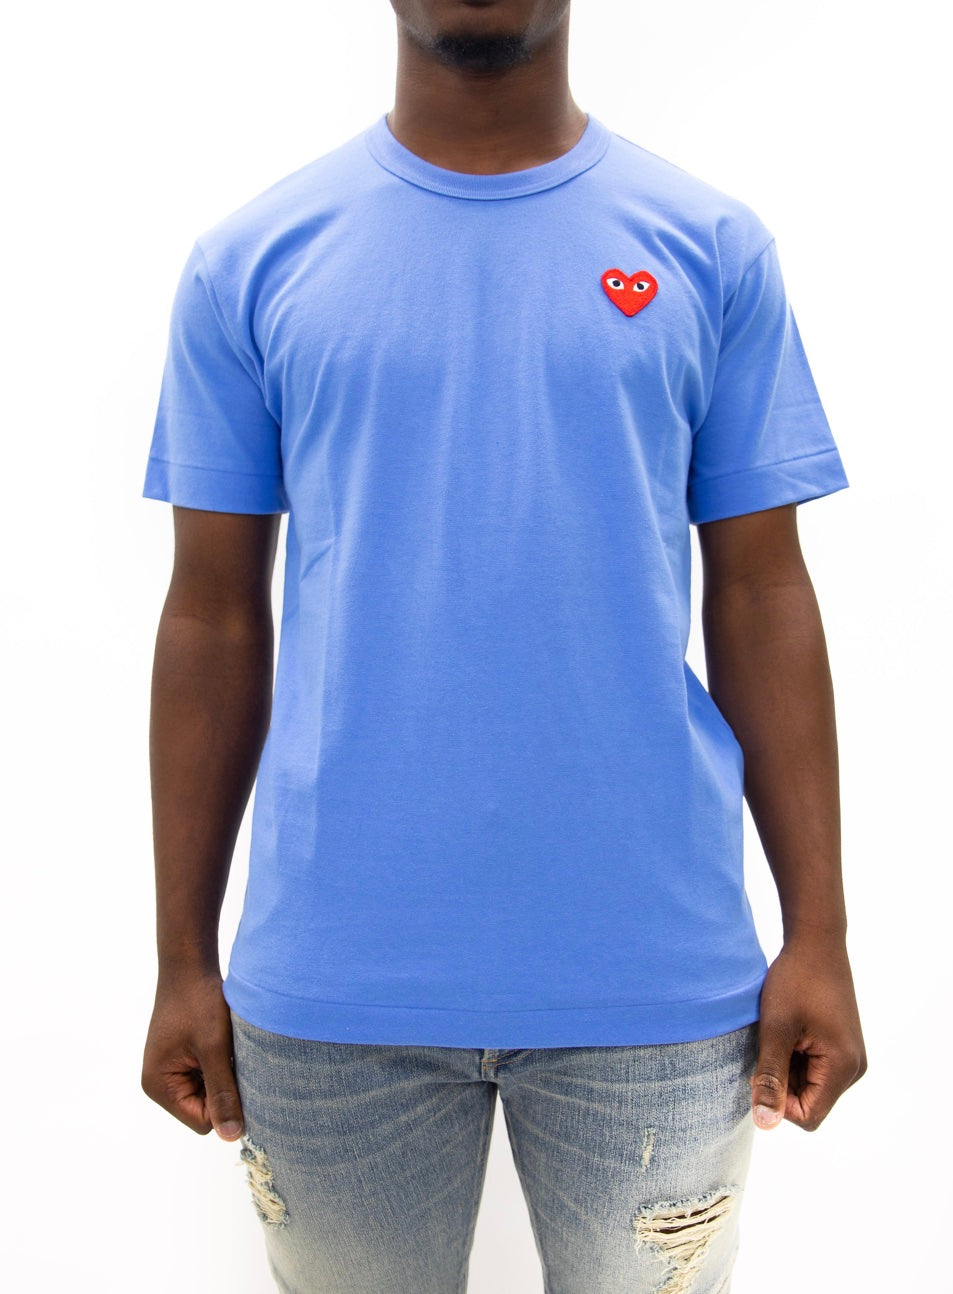 COMME des GARÇONS PLAY | Play Color Series T-Shirt Red Heart (Blue)